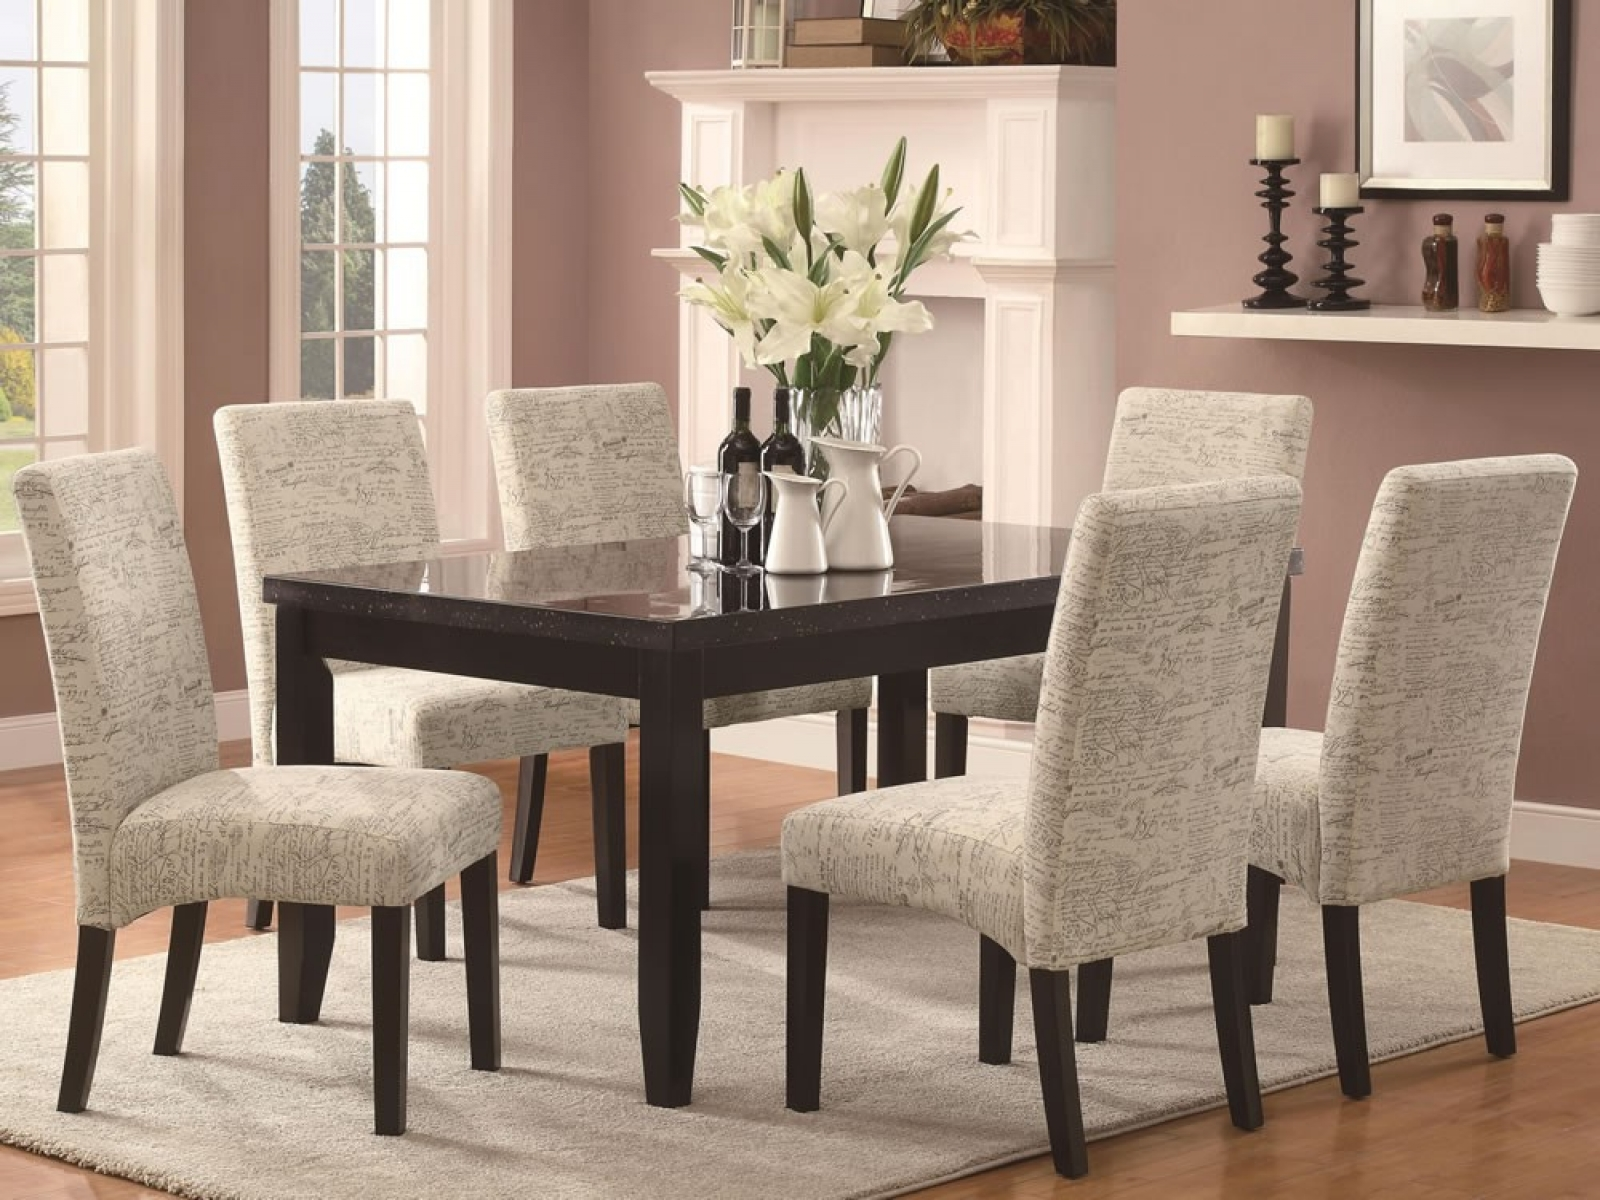 Impressive Dining Room Chairs Upholstered 3